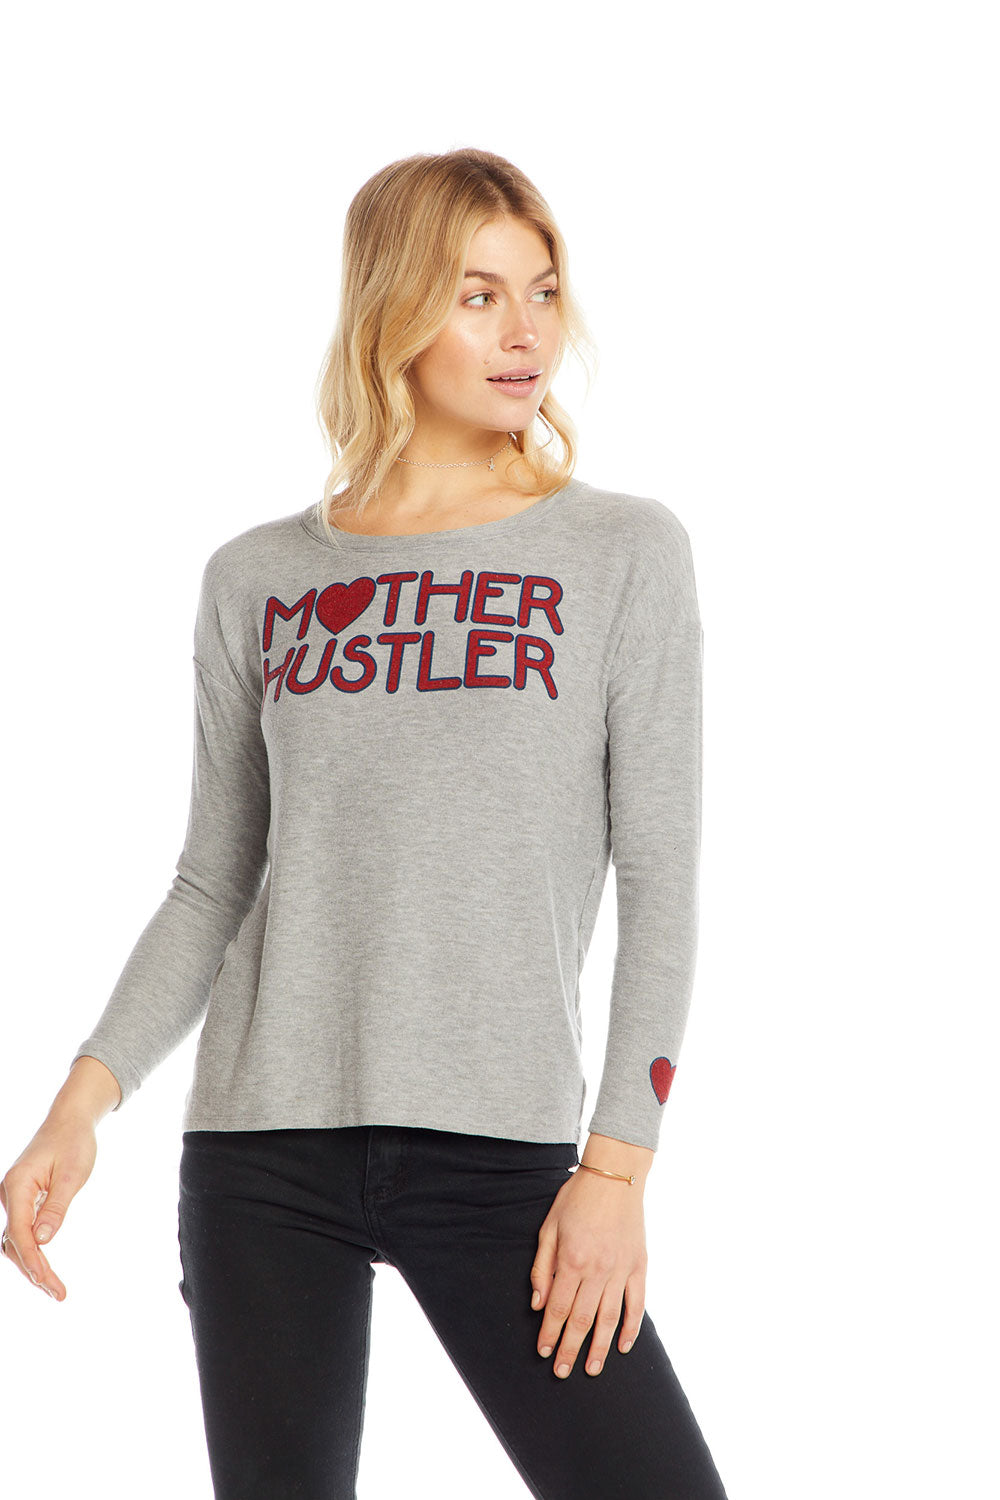 Mother Hustler, WOMENS, chaserbrand.com,chaser clothing,chaser apparel,chaser los angeles